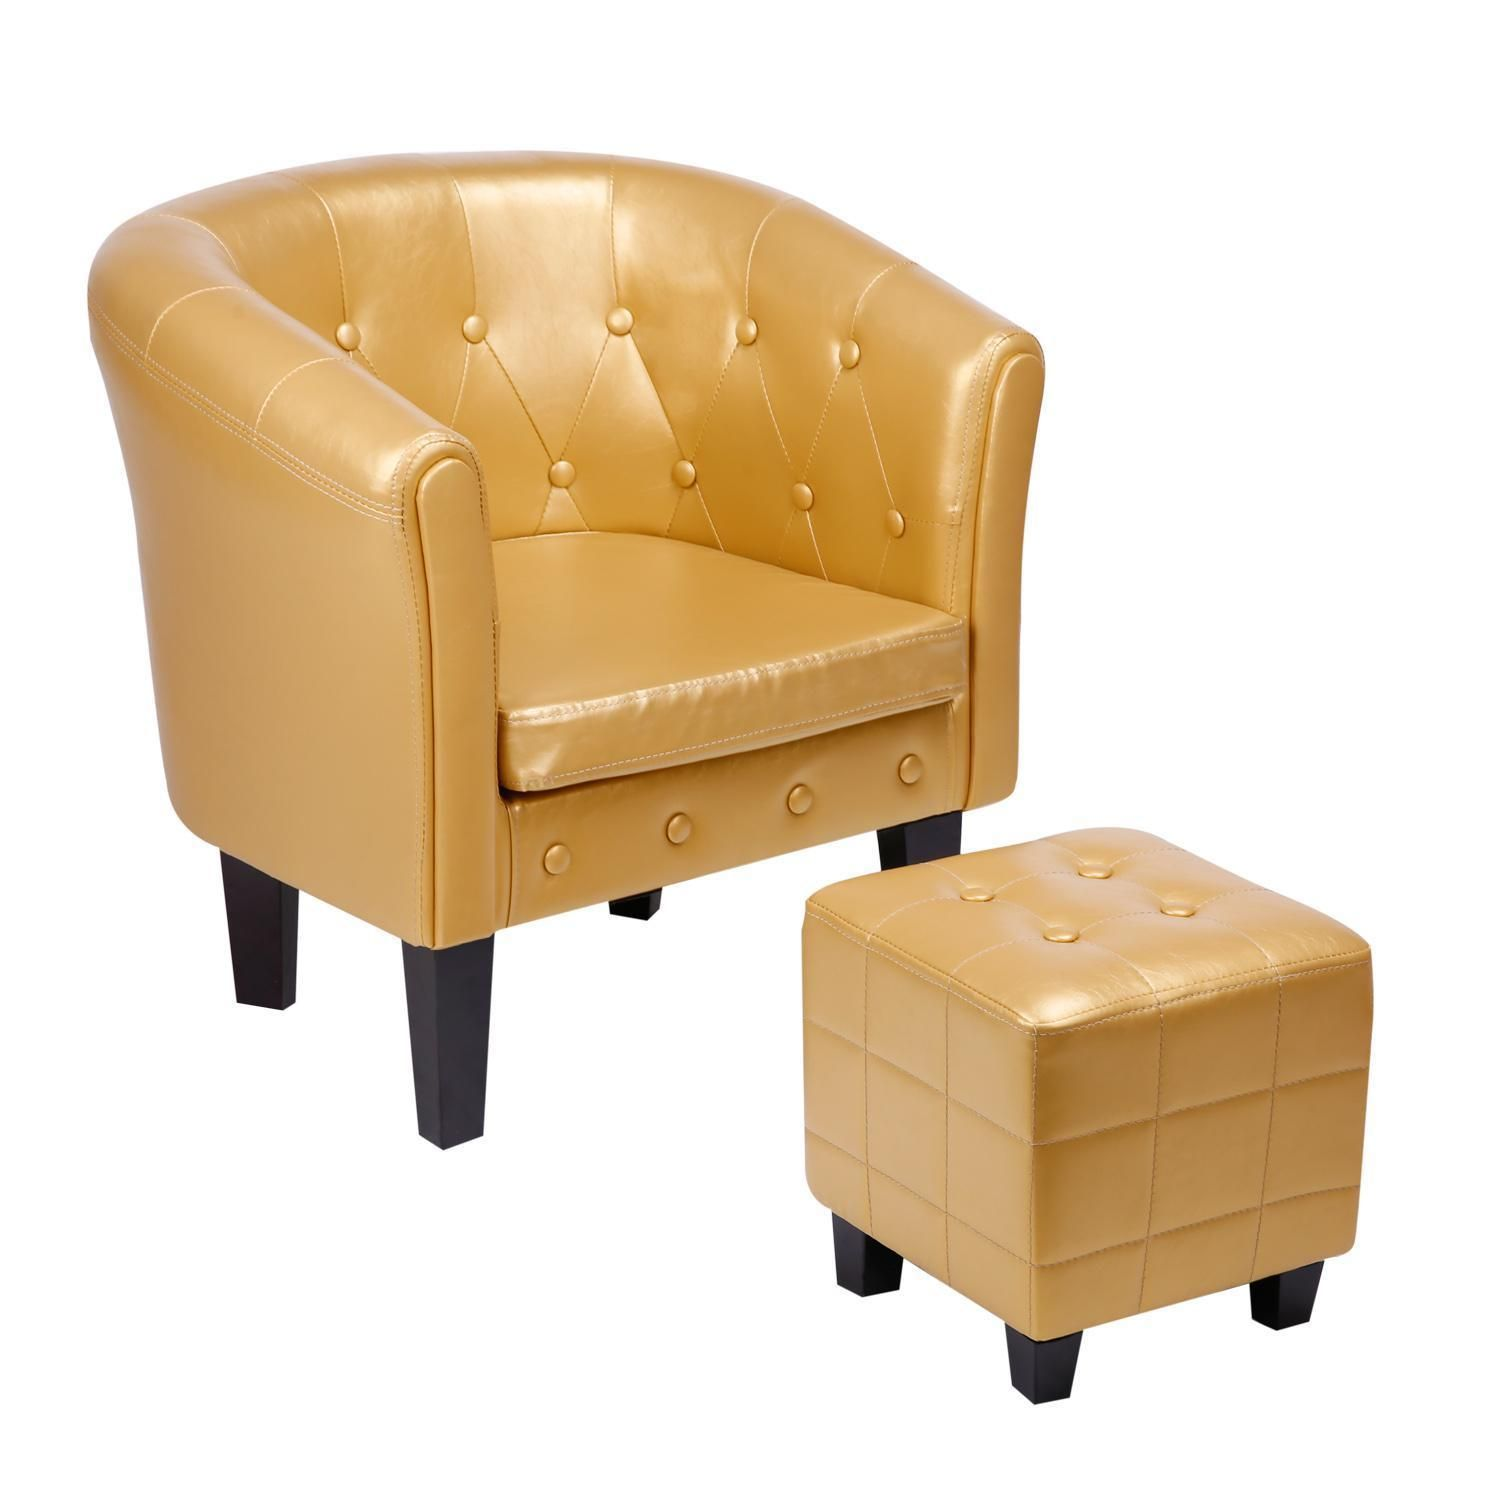 Cocktailsessel Orange Chesterfield Loungesessel Clubsessel Cocktailsessel Kunstleder Gold